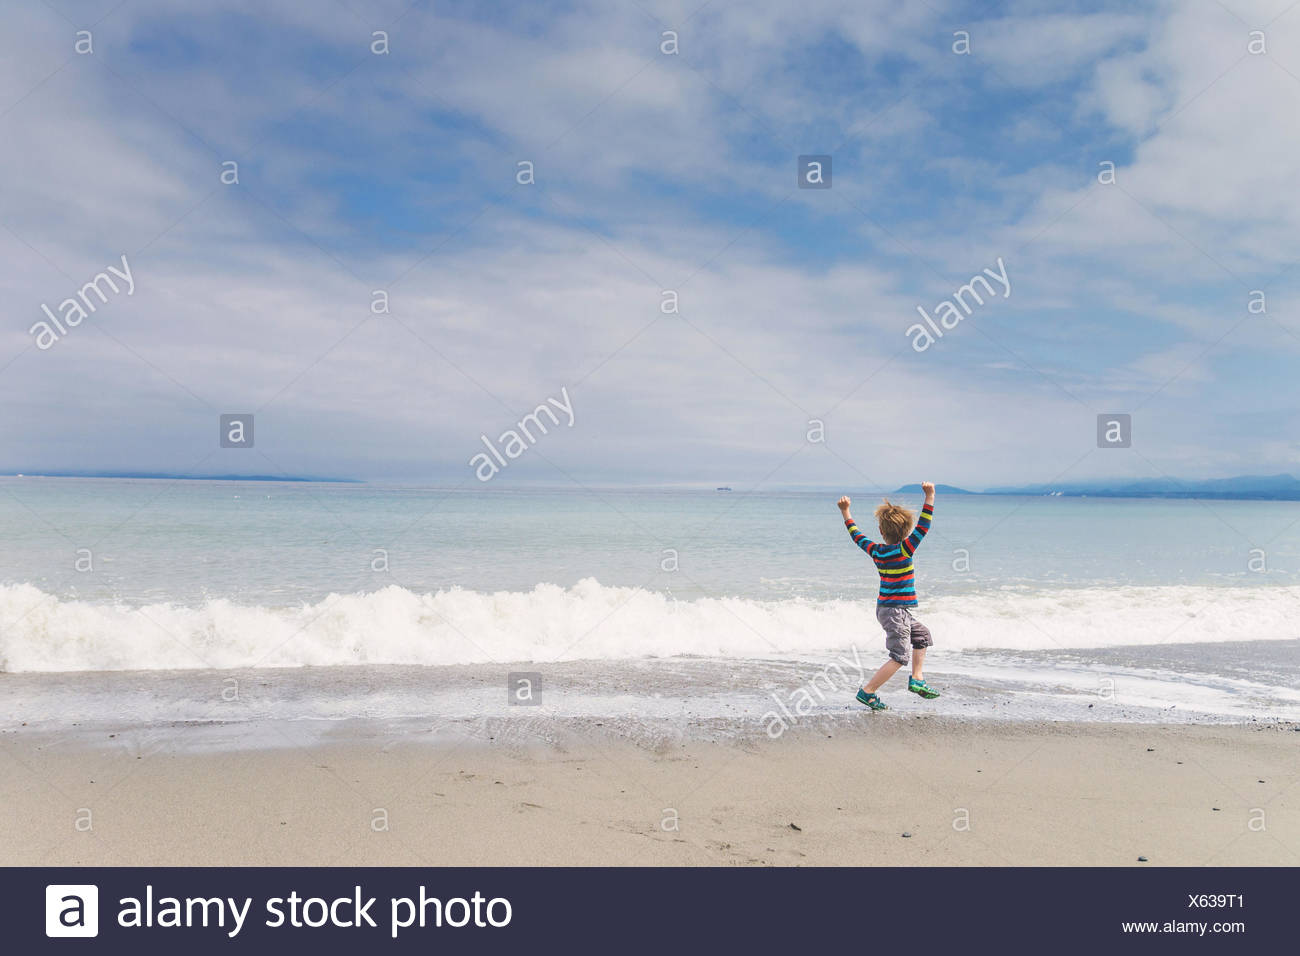 Boy jumping for joy on beach - Stock Image